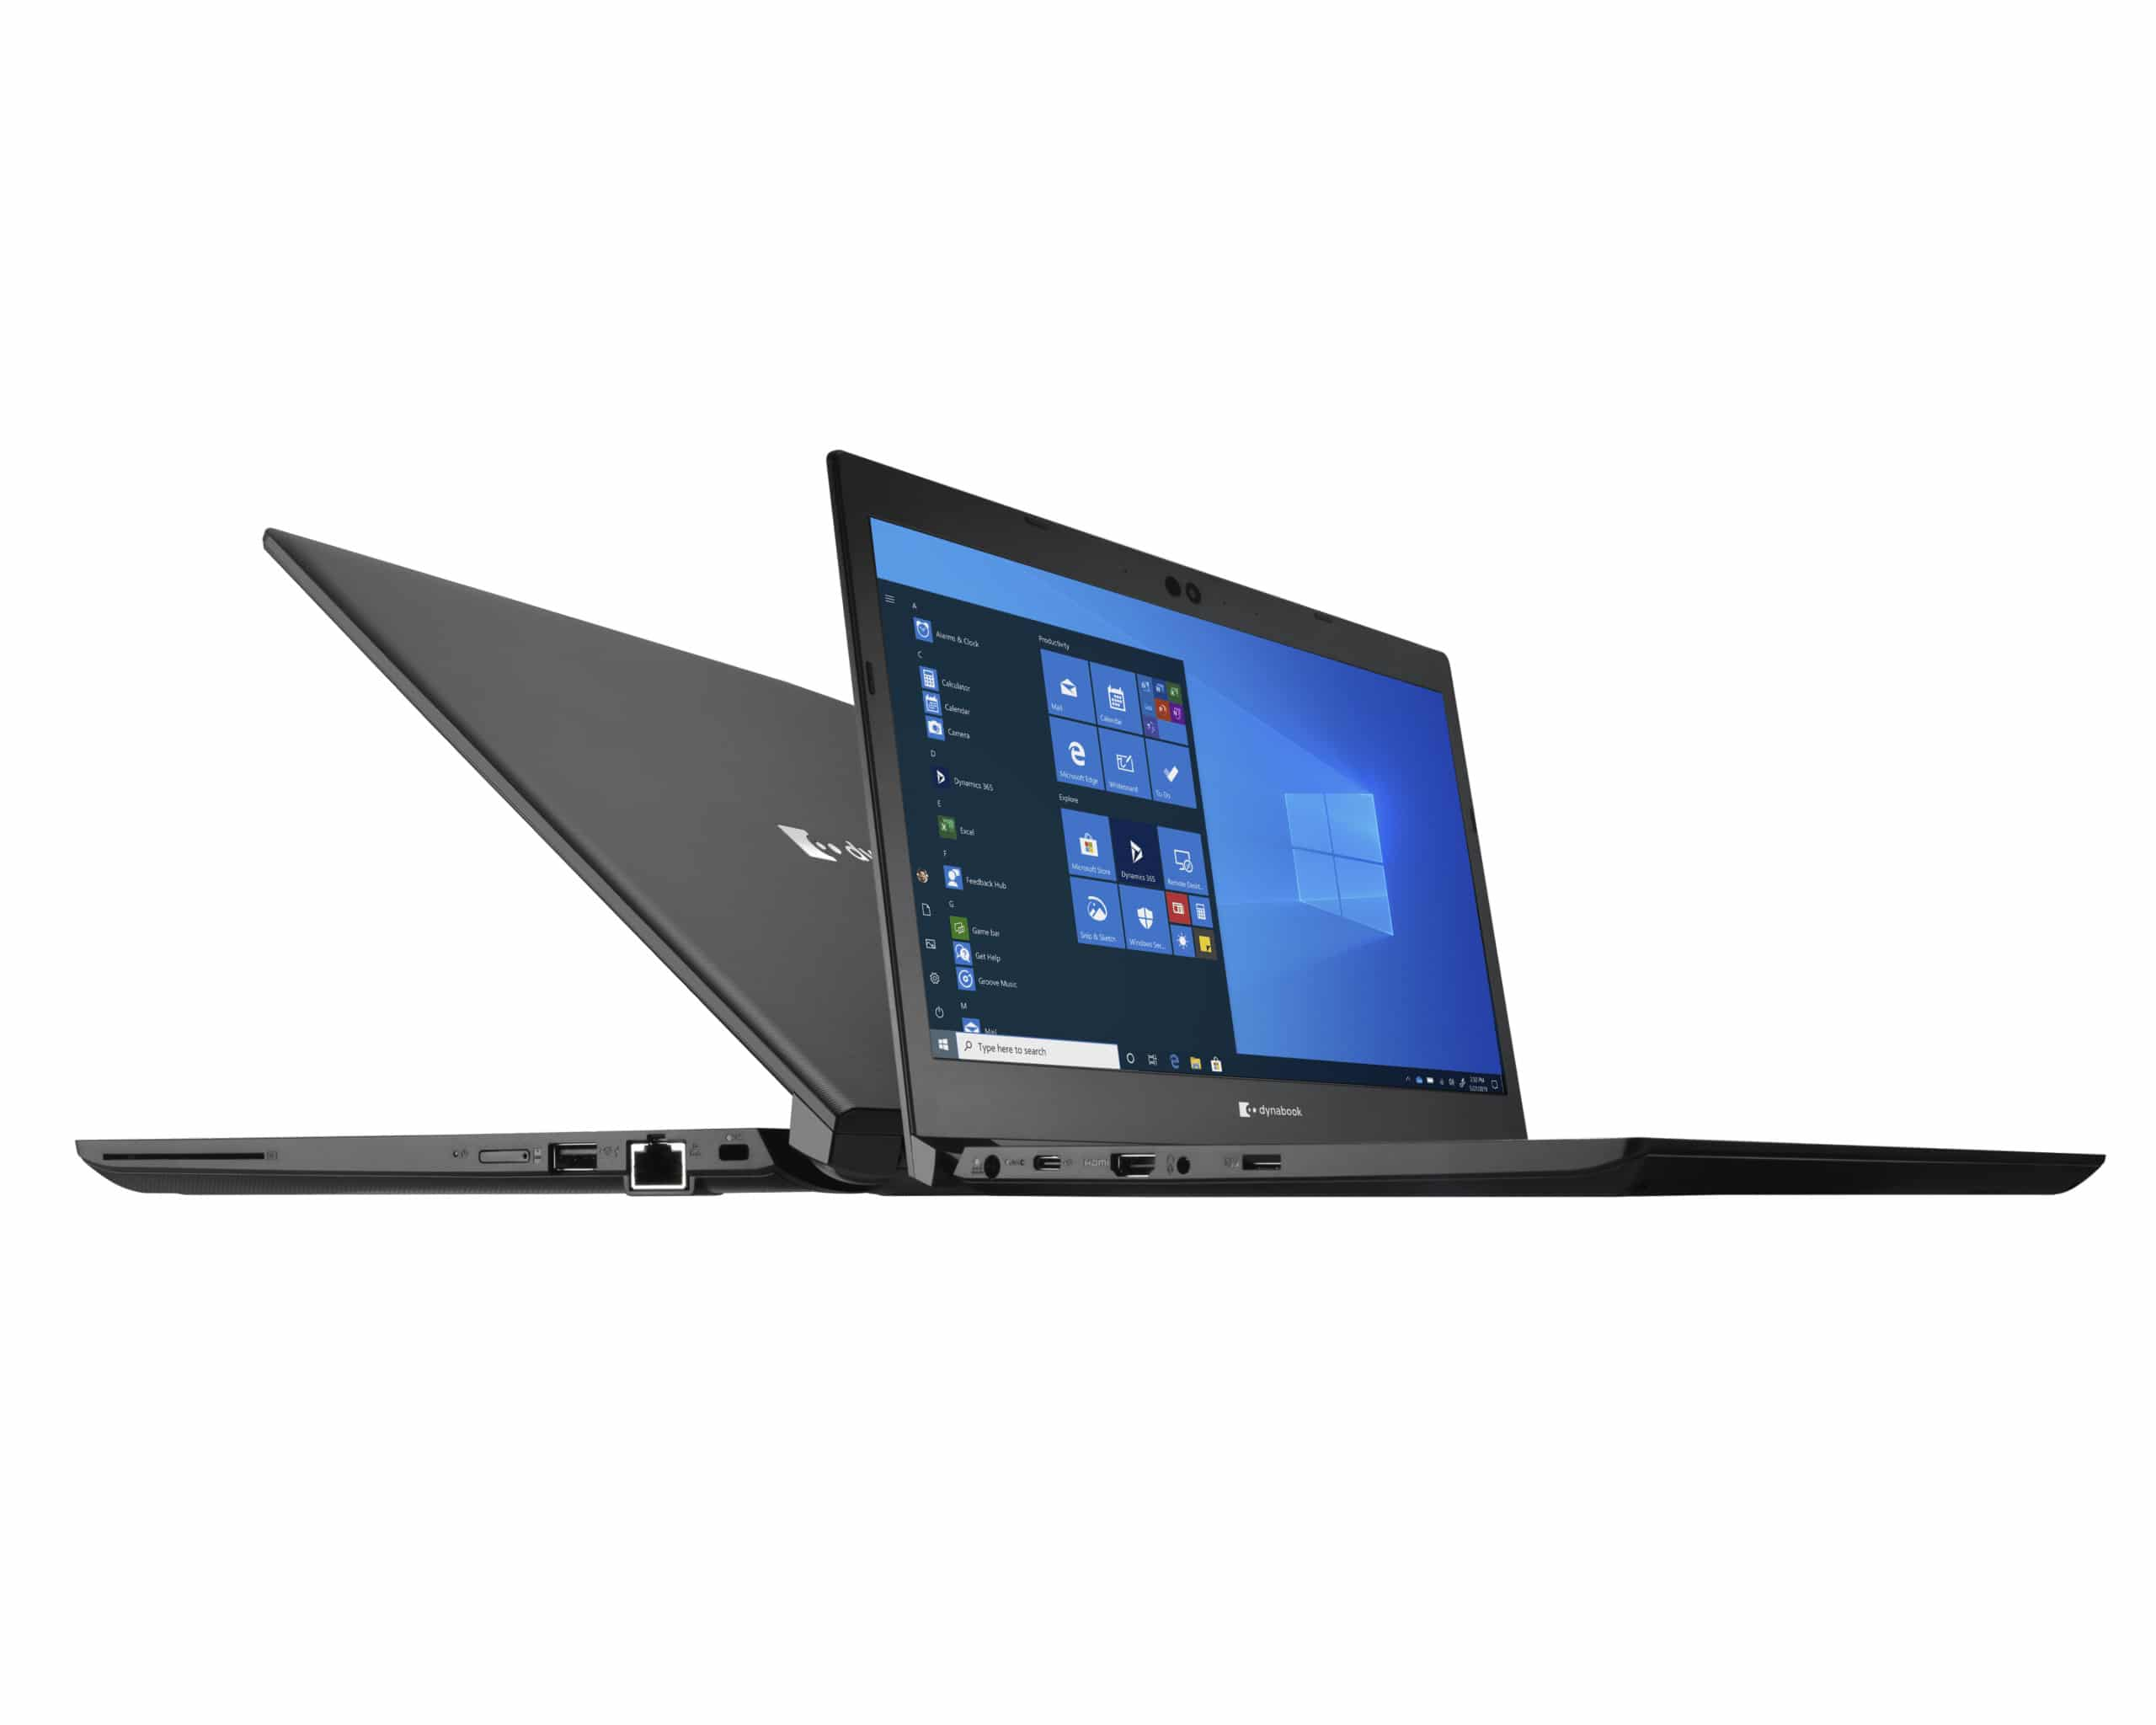 DYNABOOK LAUNCHES DURABLE AND ROBUST TECRA A30-G LAPTOP